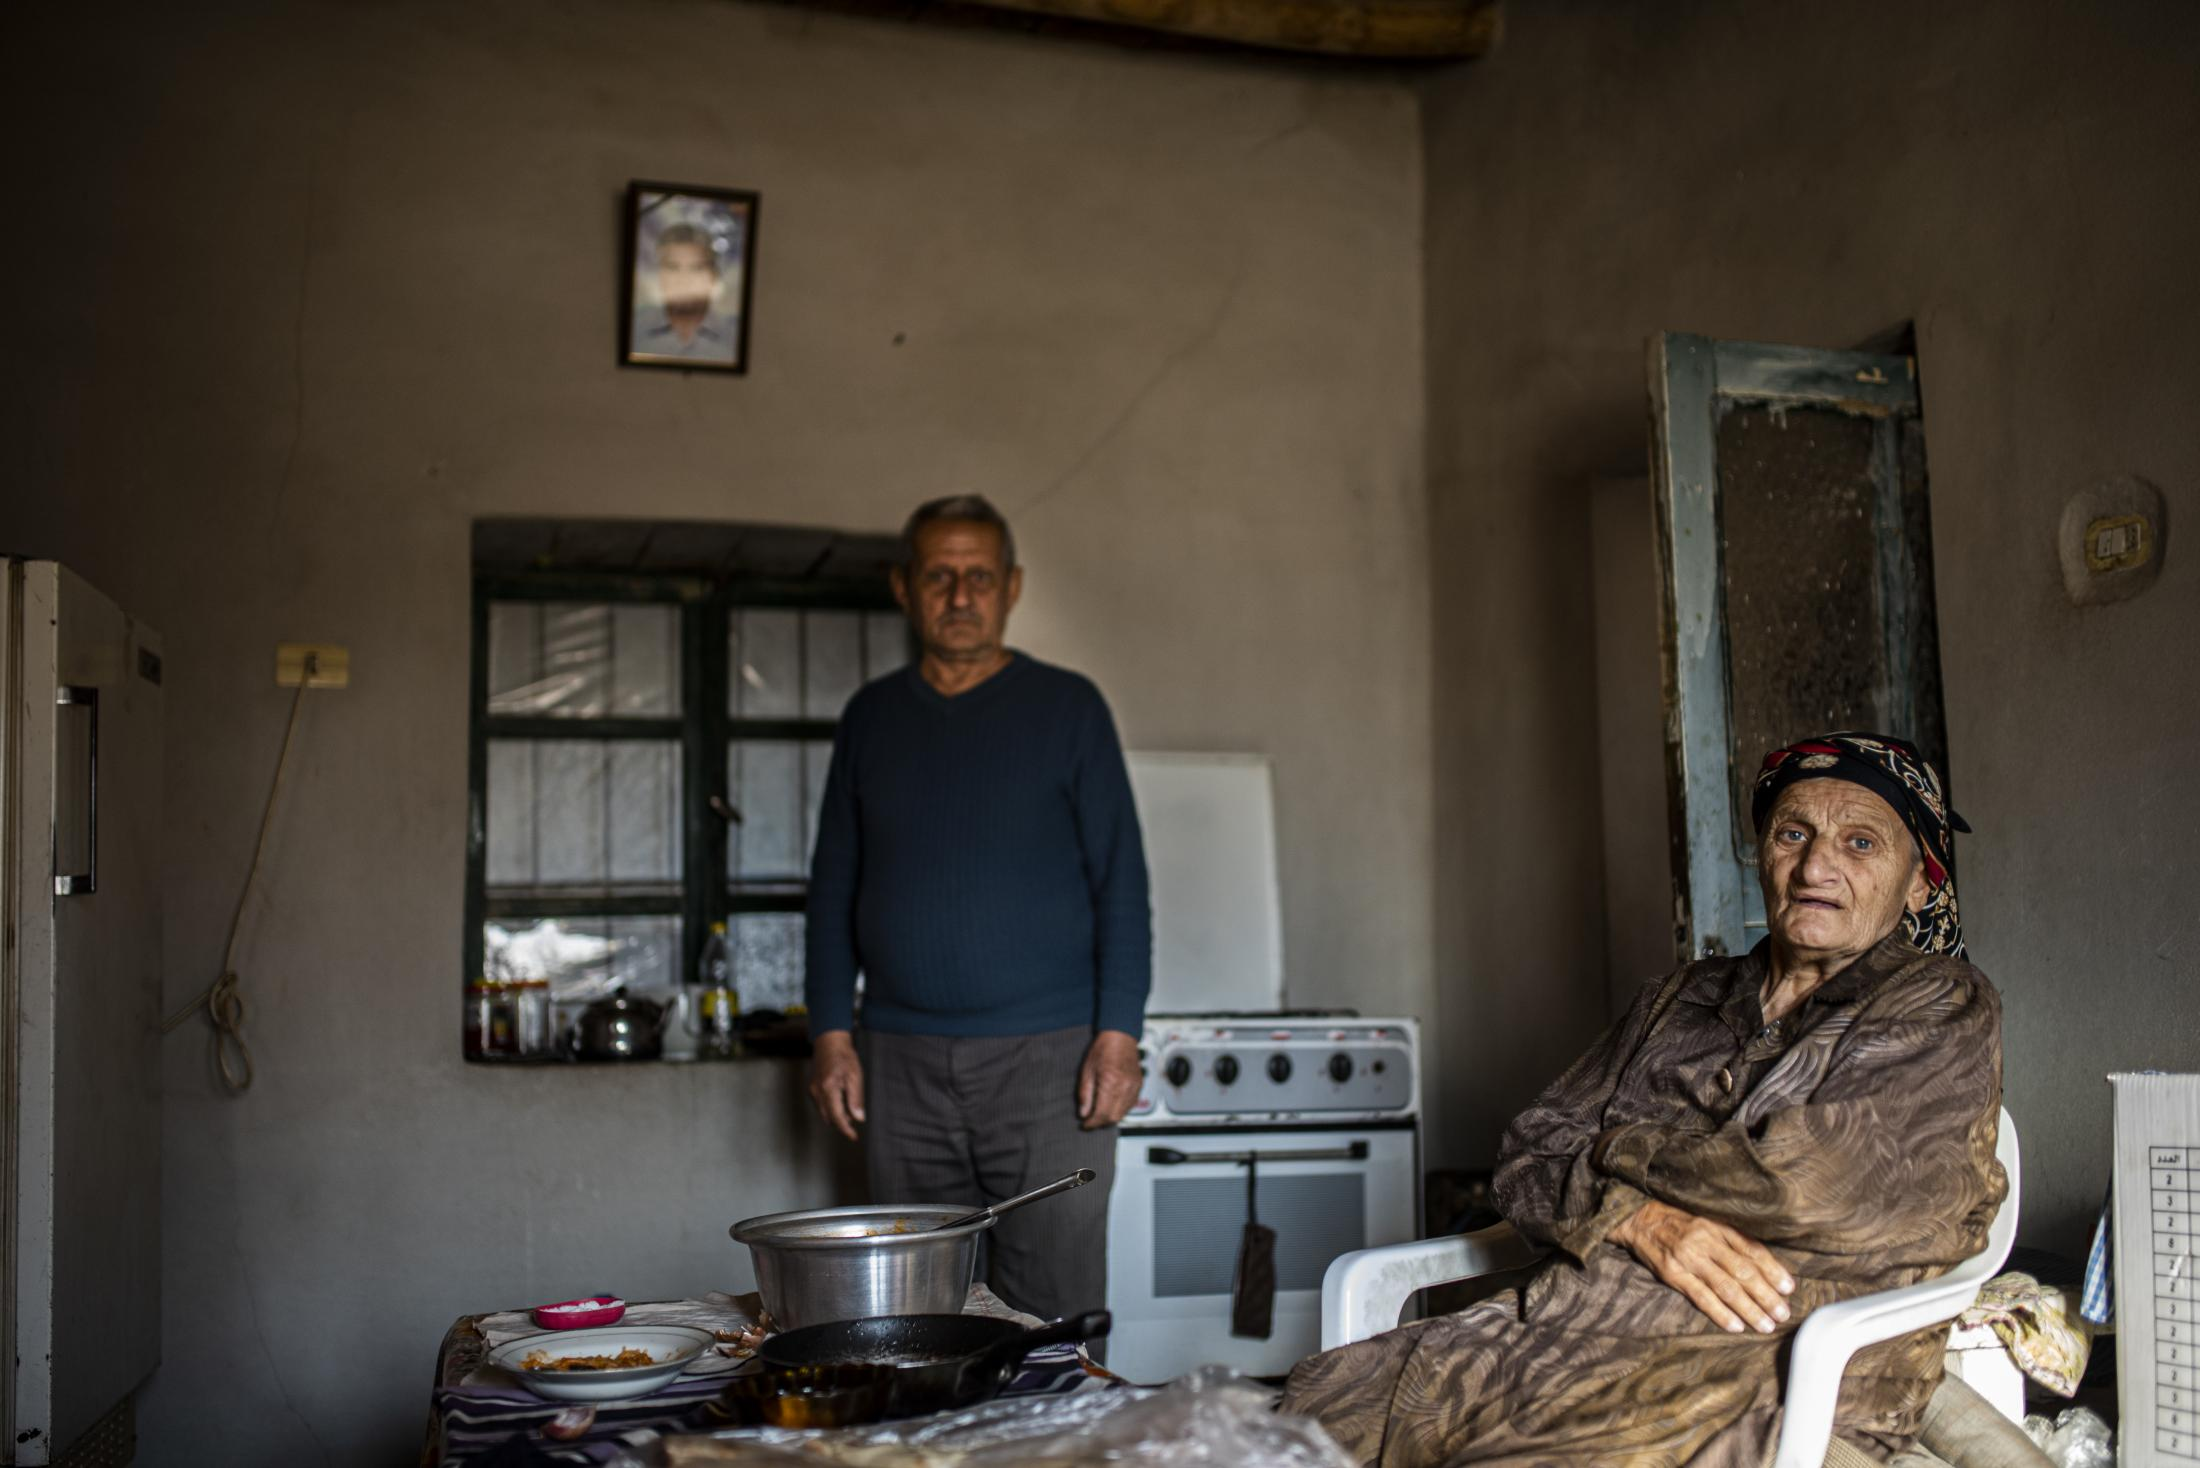 XXX and YYY are a couple of Tel Nasri who are still living in their house. The husband is trying to avoid his wife to know that outside there is war. After the withdrawal of US troops from northern Syria in October 2019, Turkey launched an offensive against the predominantly Kurdish areas in the northeast of the country along Islamist forces. Calls for war crimes investigations into the conduct of Ankara-backed militias are mounting ever since. (Andoni Lubaki / Euskal Fondoa)